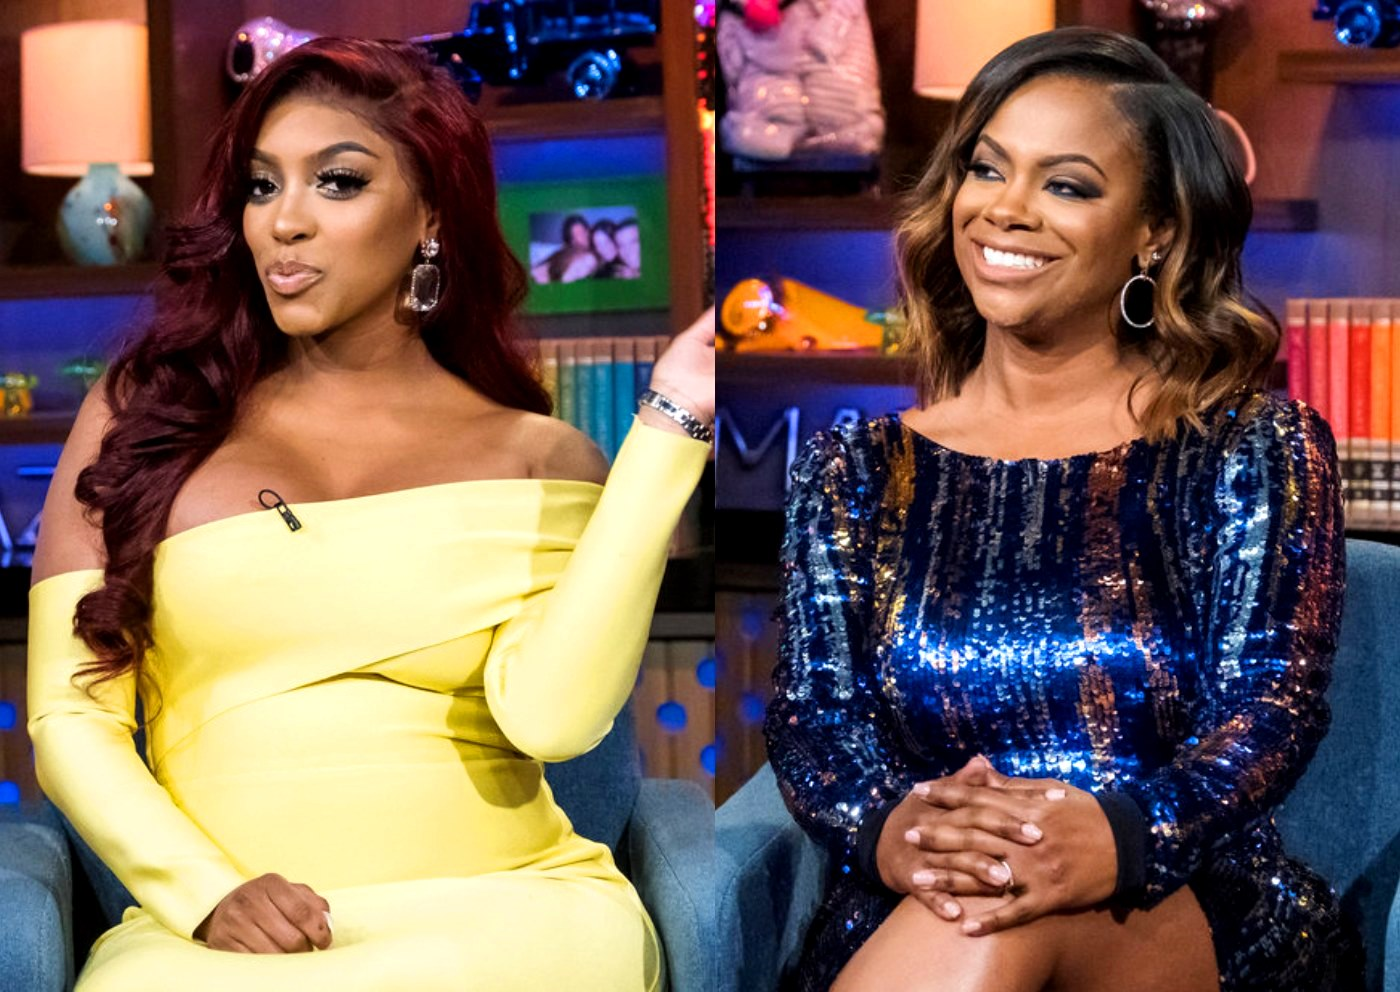 Porsha Williams' Fans Have A Good Laugh Seeing How She's Dealing With Old Drama 'Tryna Sneak Back Up' - Kandi Burruss Is Shaded Again